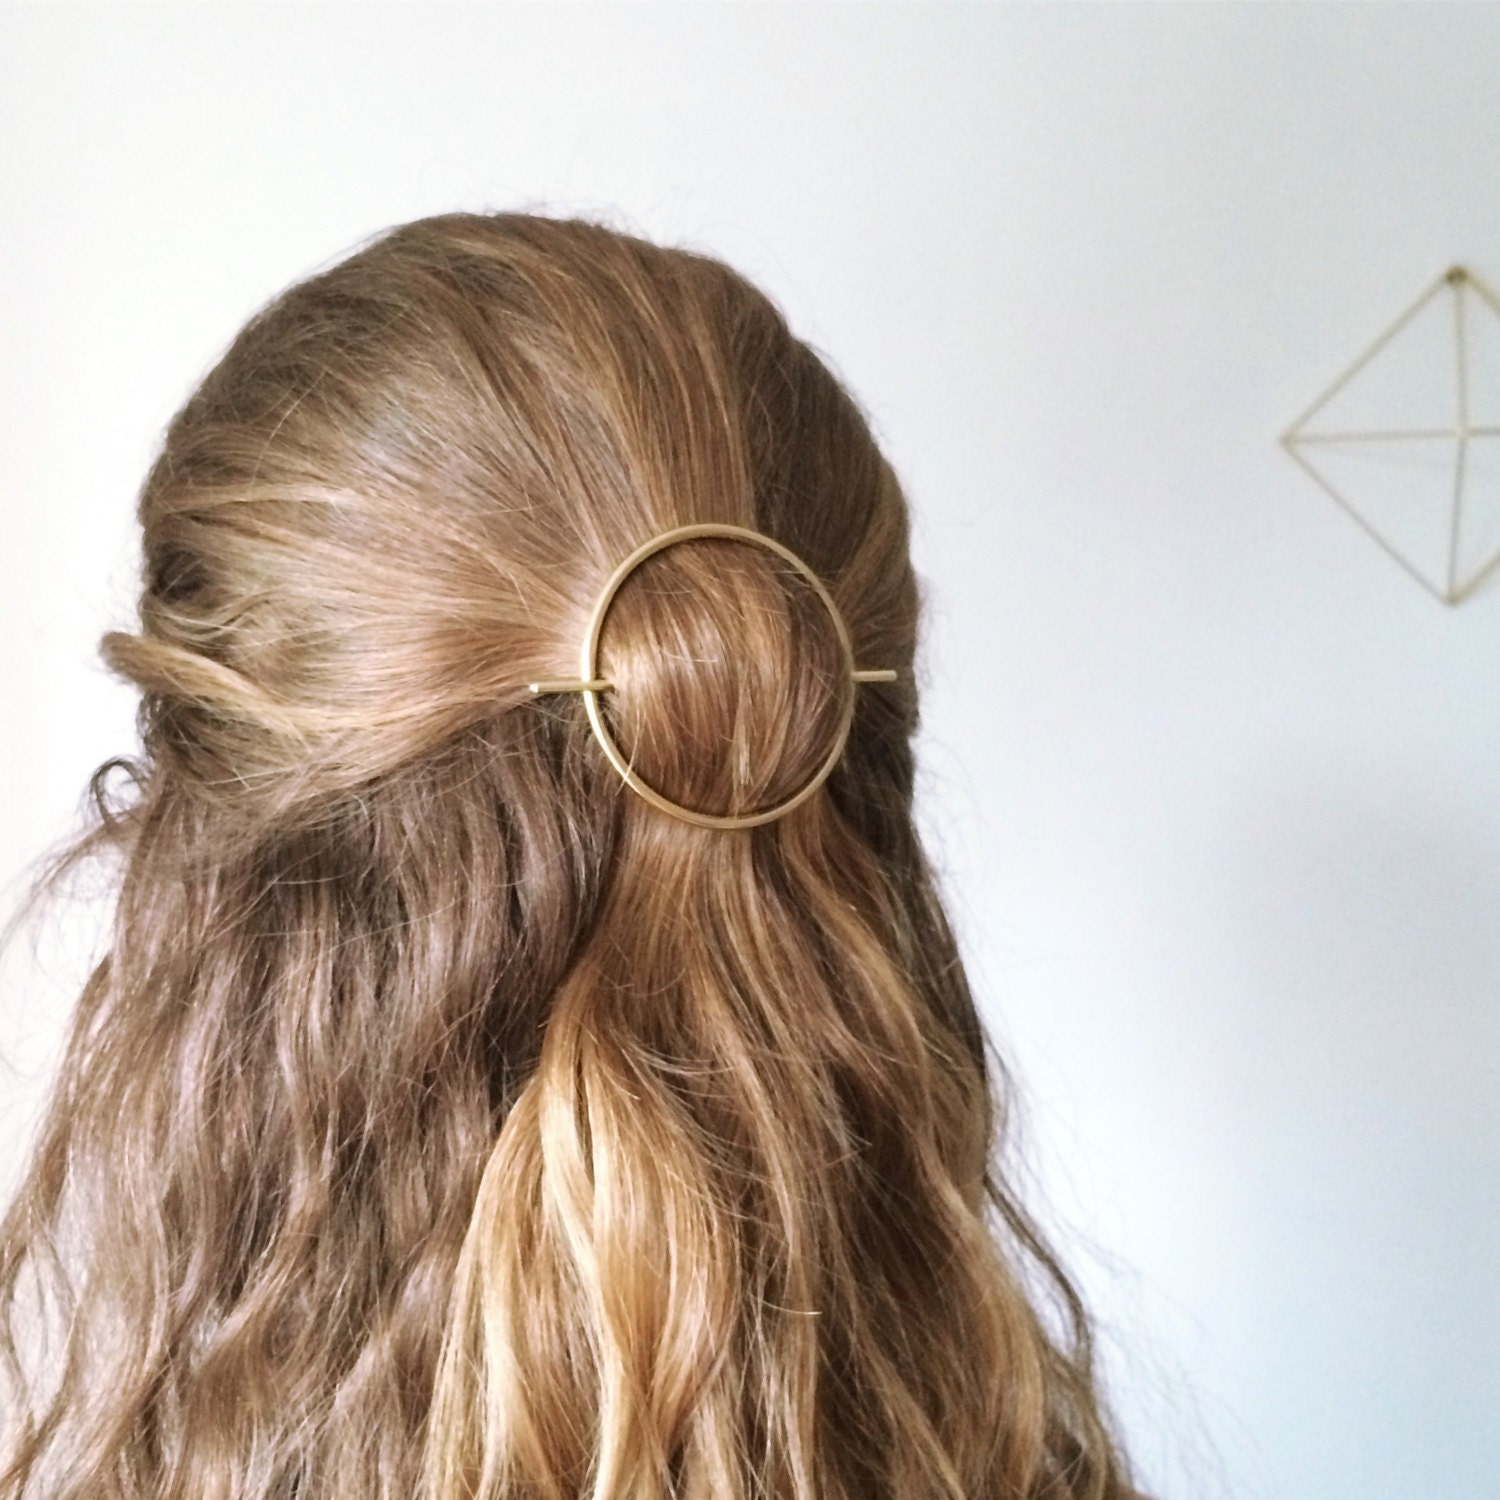 11 days ago · Give your 'do a sleek, chic look by topping it off with the Lulus Amee Gold Ponytail Hair Clip! Brushed gold metal ponytail holder with a minimalist, curved design. Hidden clip underneath for a secure hold. Clip measures 2.